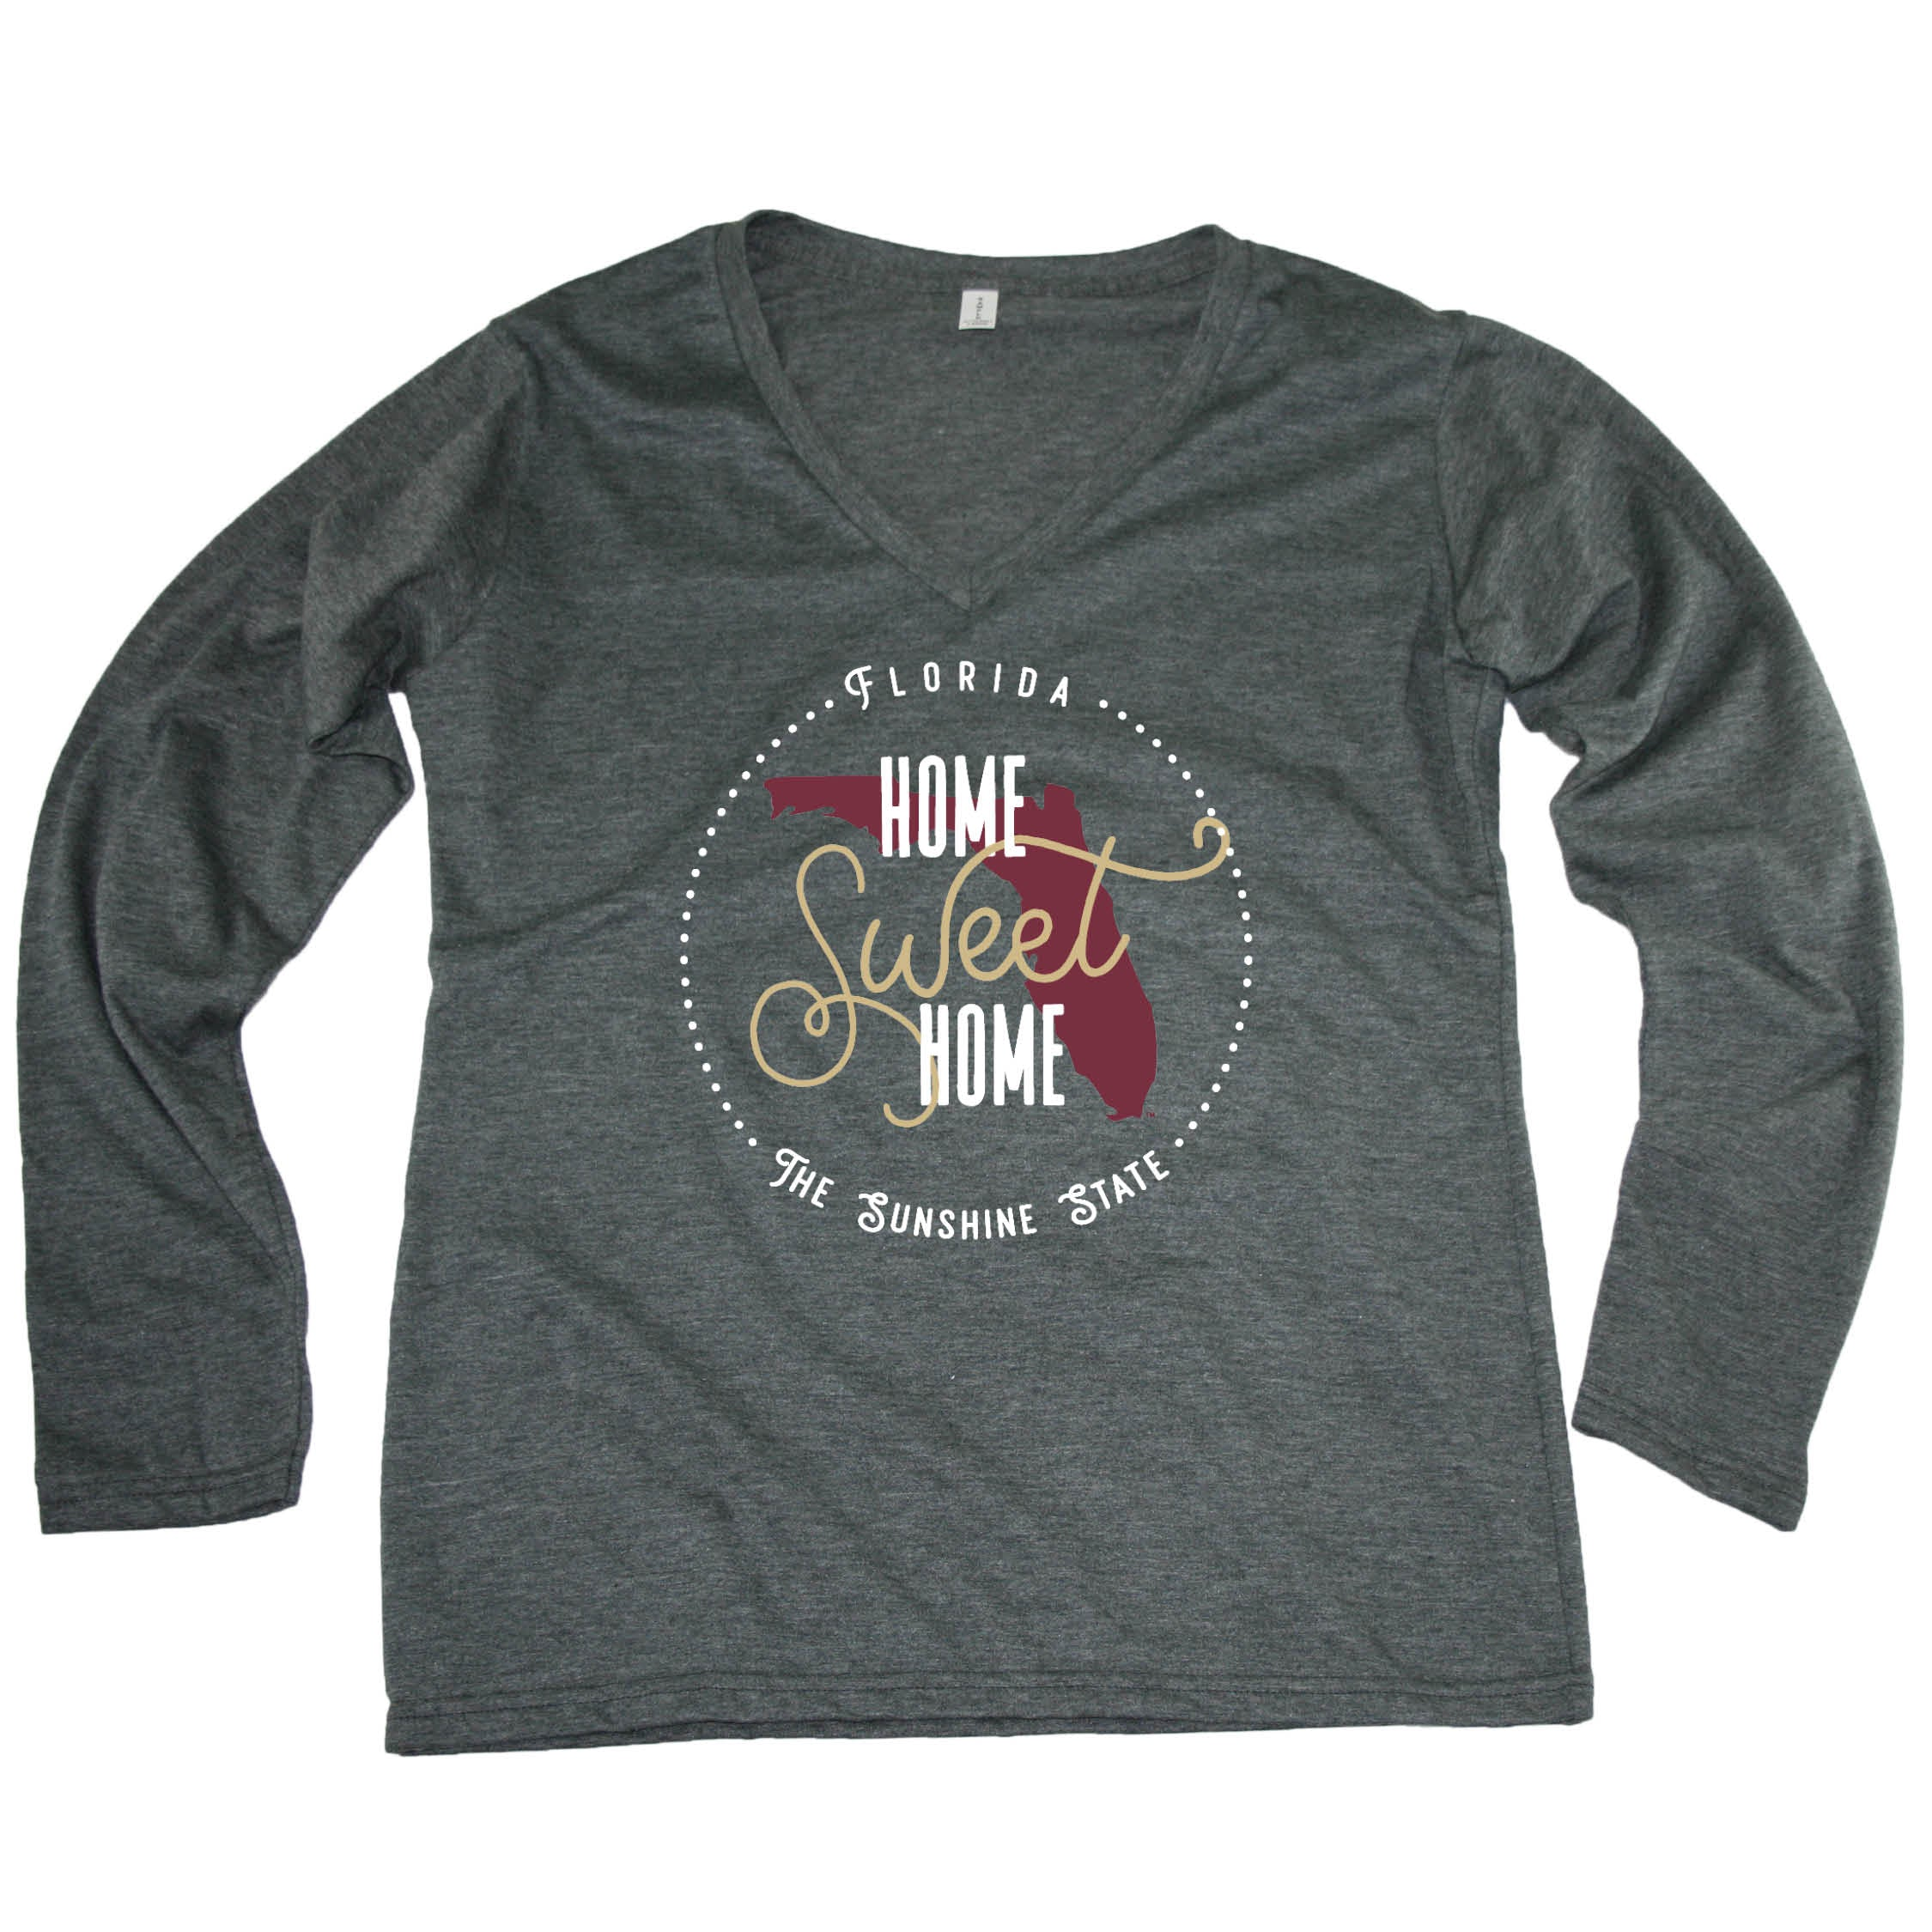 FLORIDA LADIES' LONG SLEEVE V-NECK | HOME SWEET HOME | GARNET/GOLD